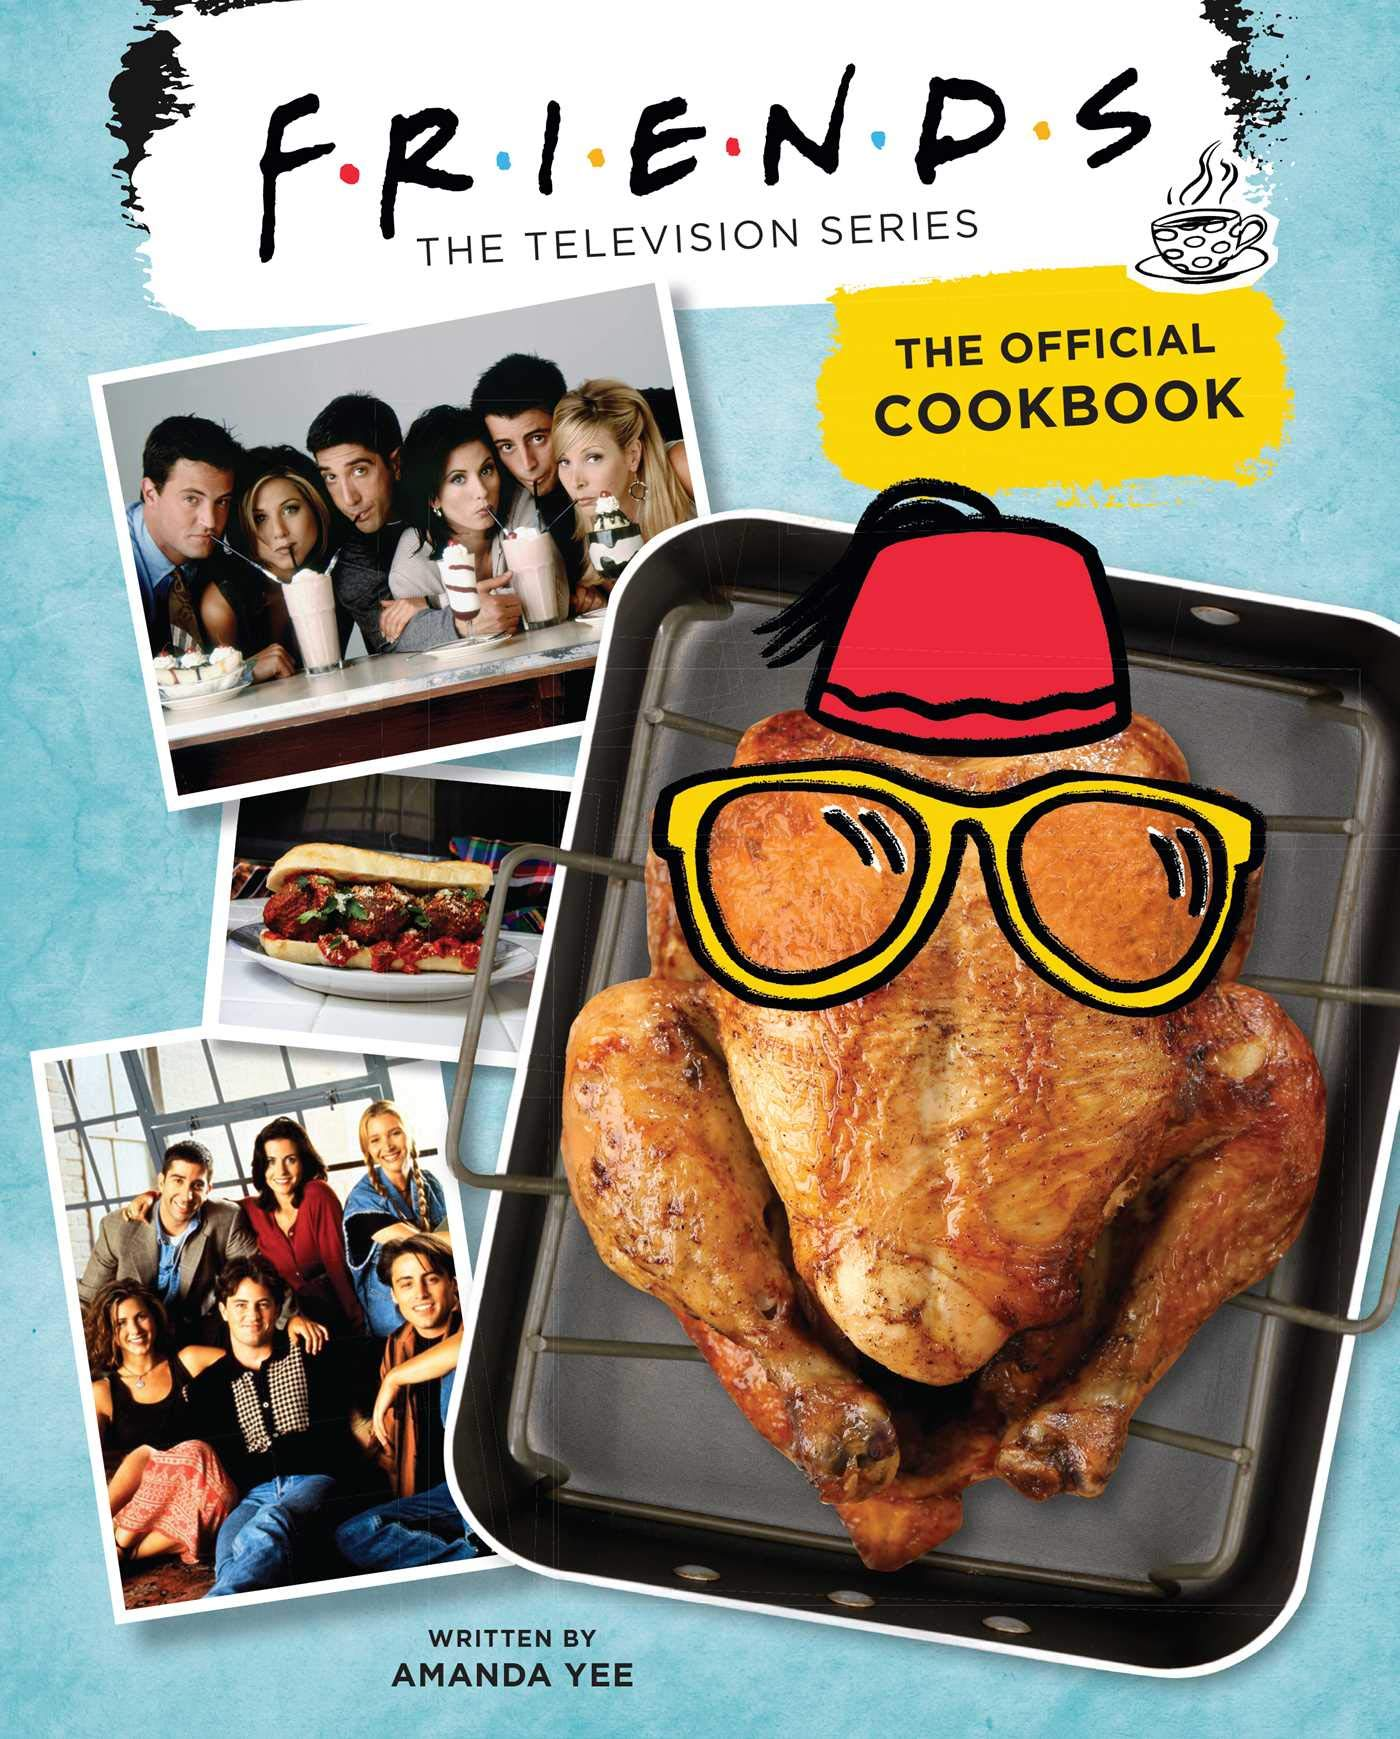 Image Credit: Amazon/Friends: The Official Cookbook